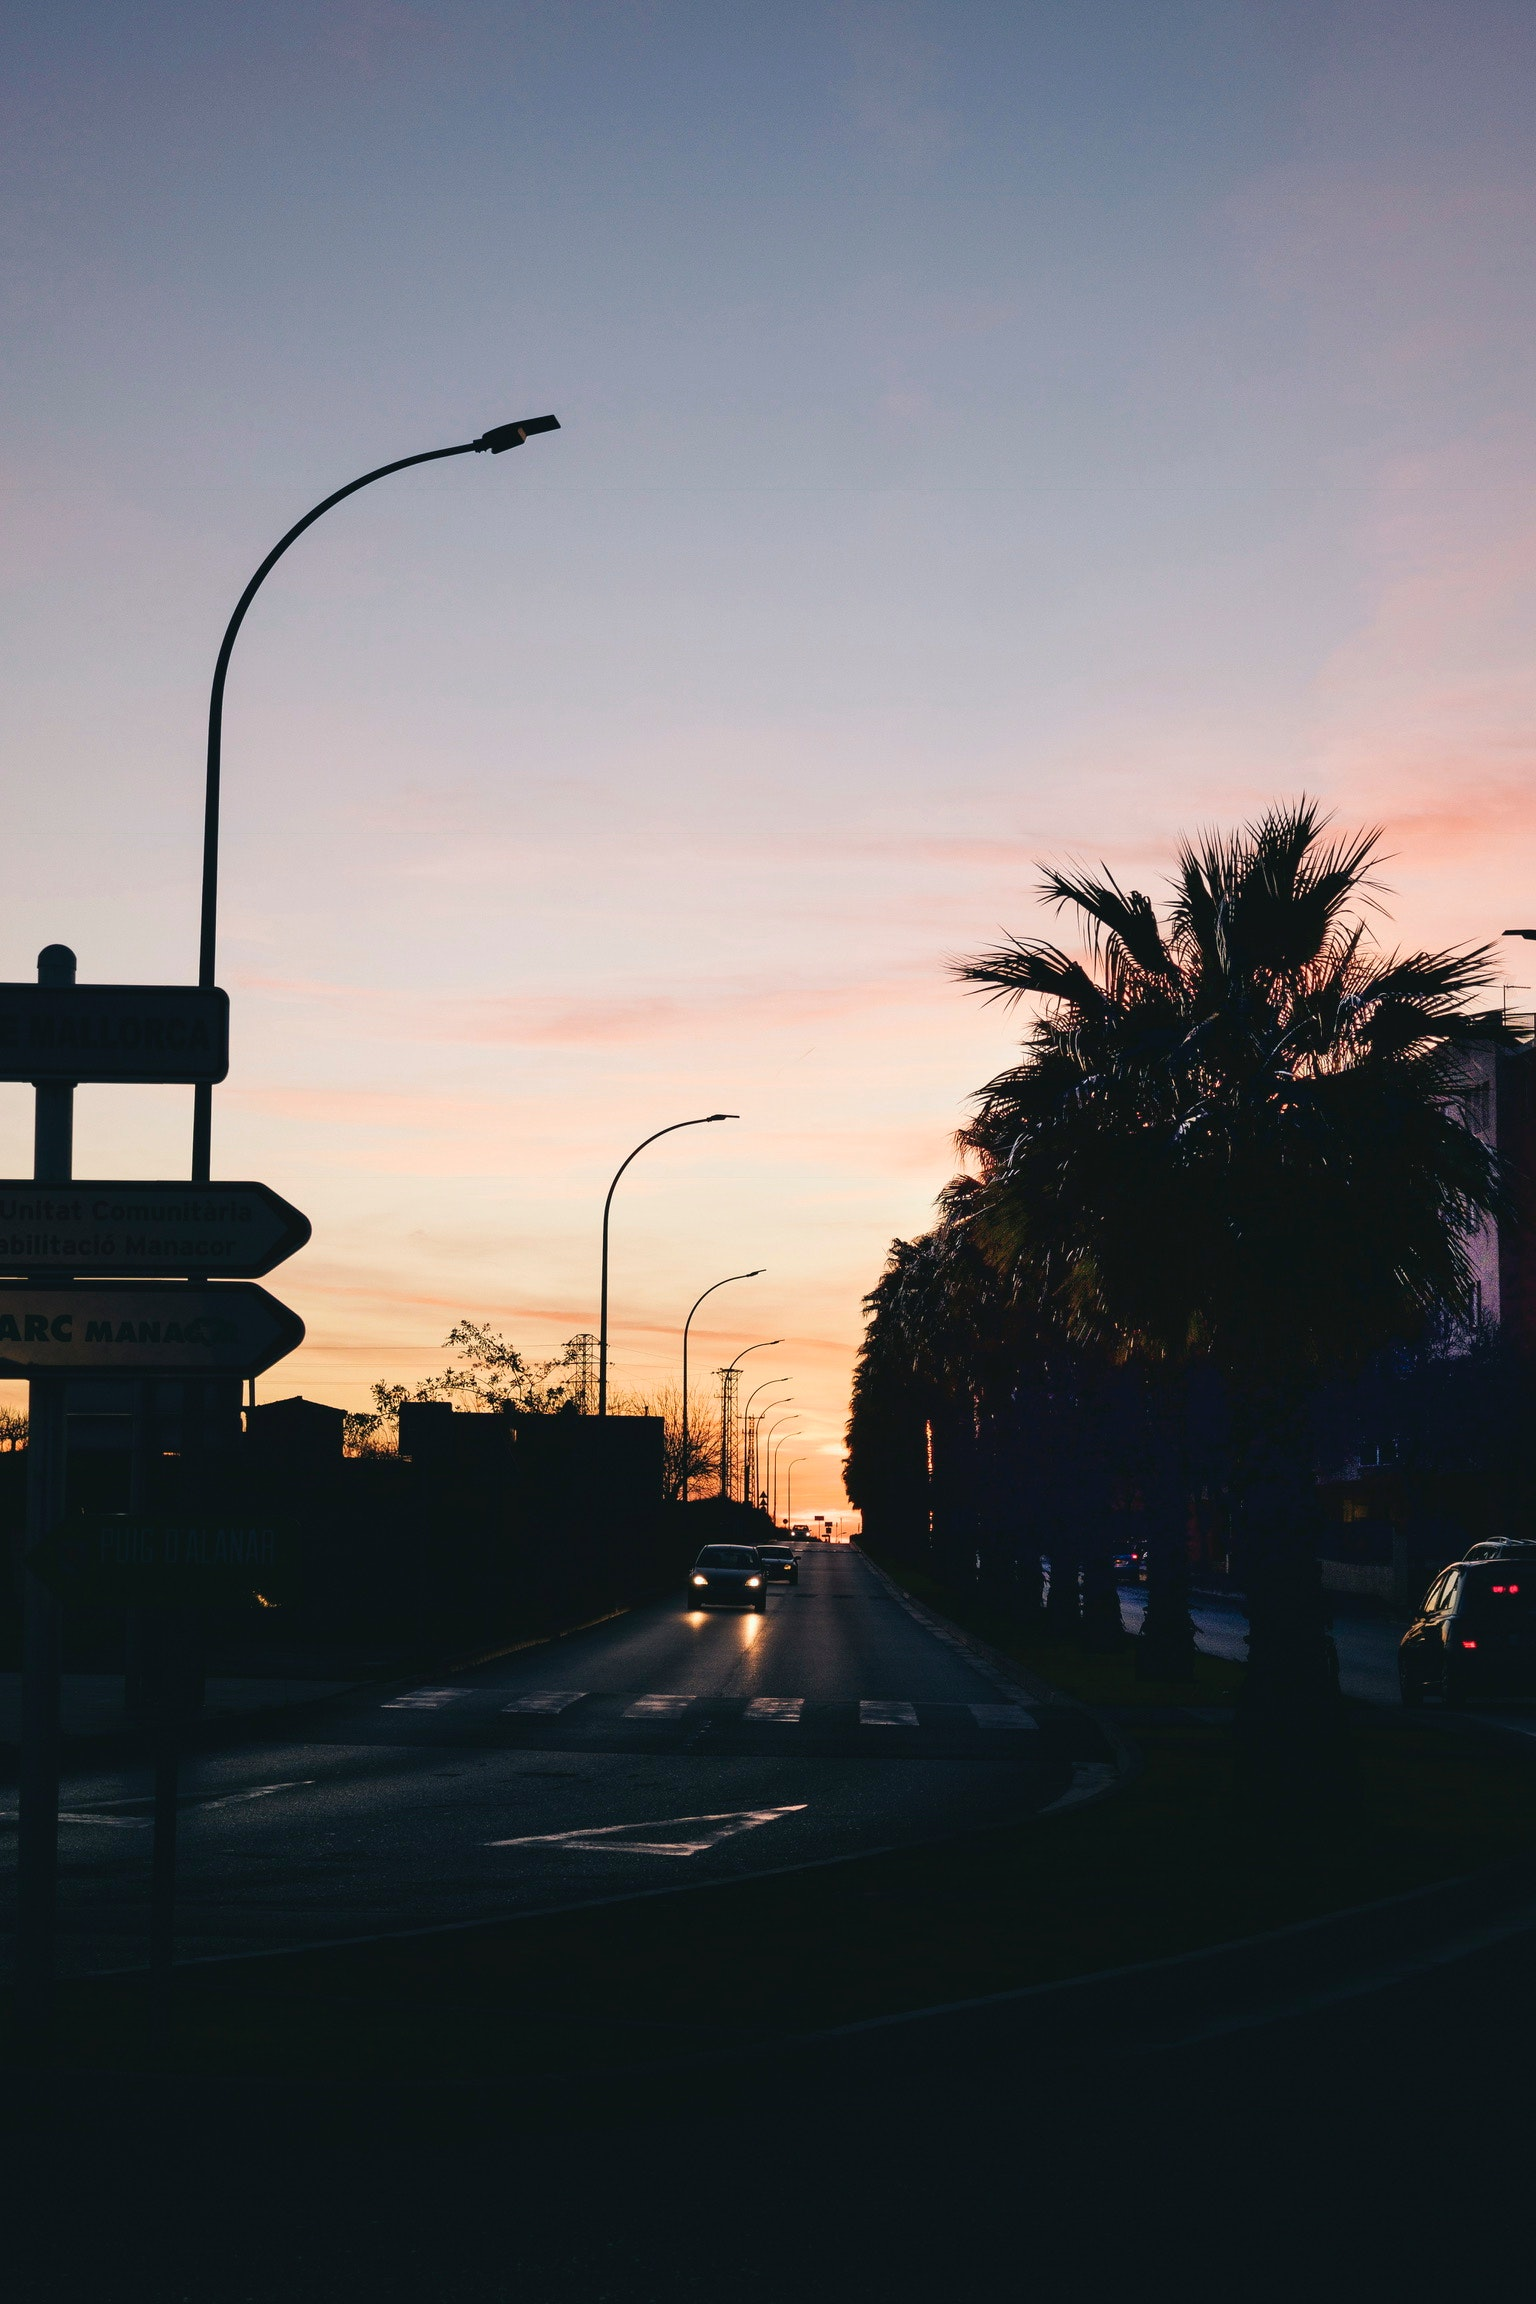 Silhouette Photo of Road Between Majesty Palm, Backlit, Palms, Transportation system, Sunset, HQ Photo